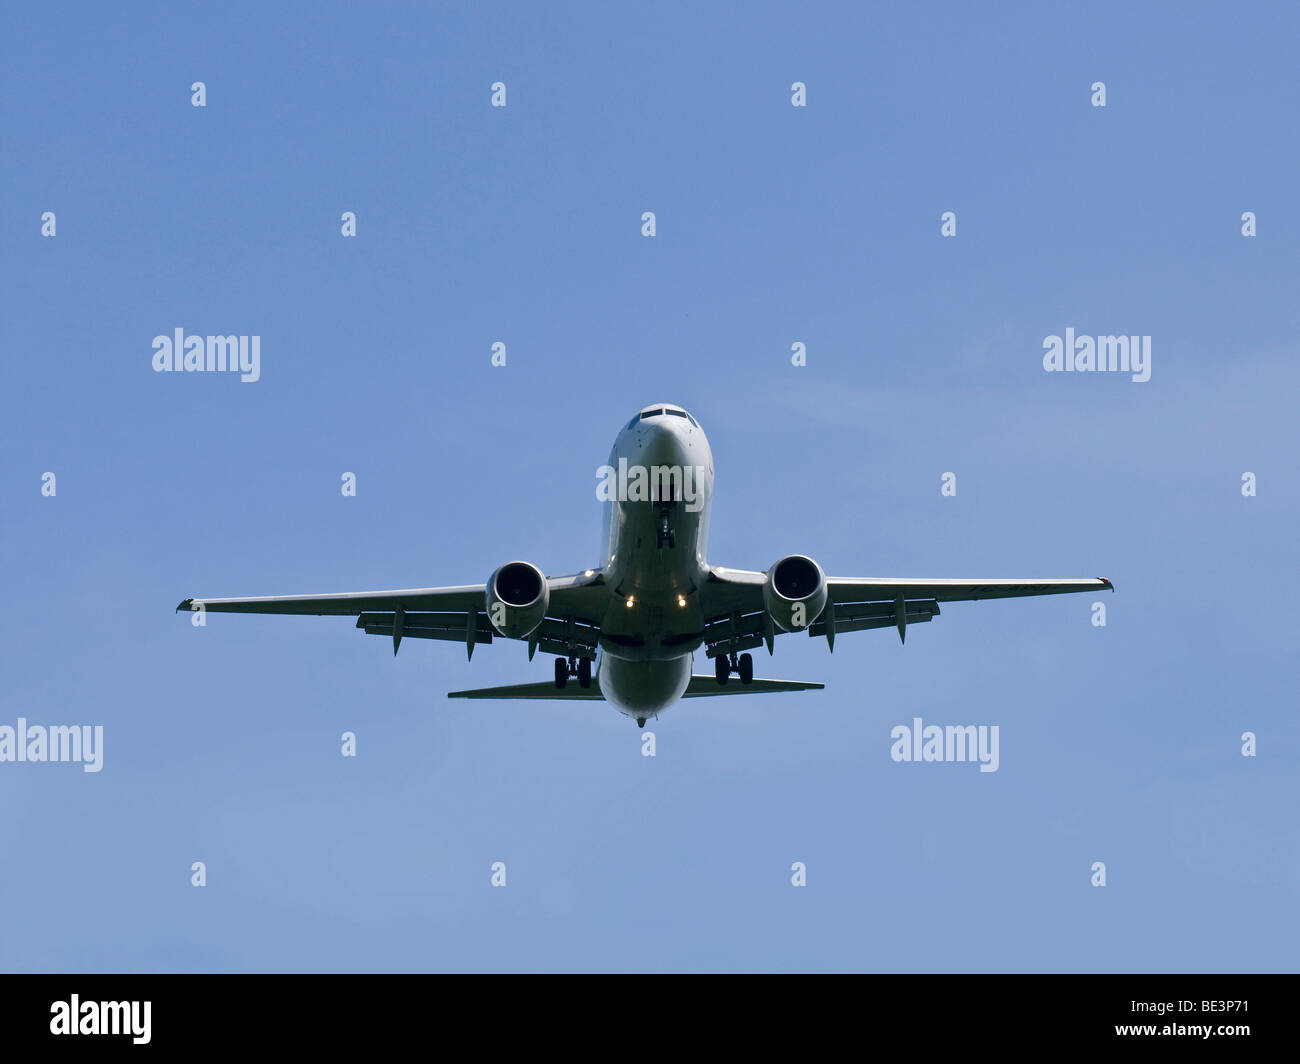 Aircraft seen from below - Stock Image